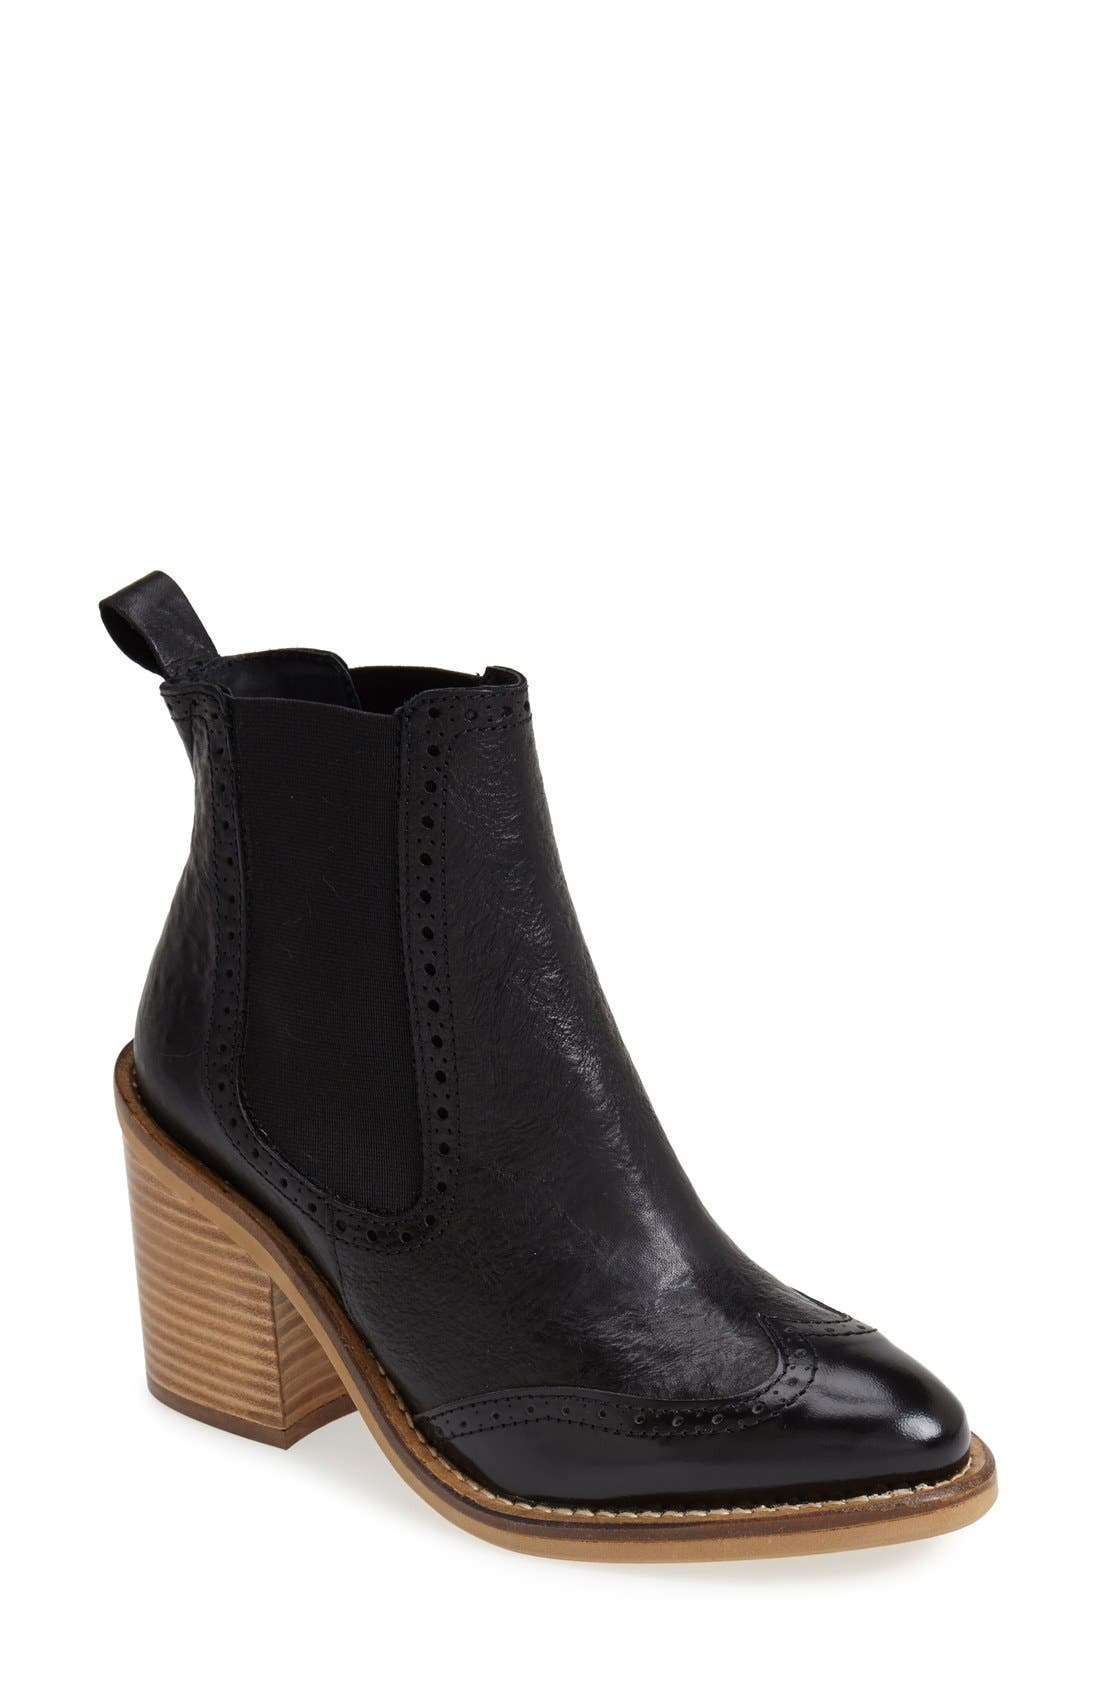 Alternate Image 1 Selected - Topshop 'Maine Brogue' Chelsea Ankle Bootie (Women)